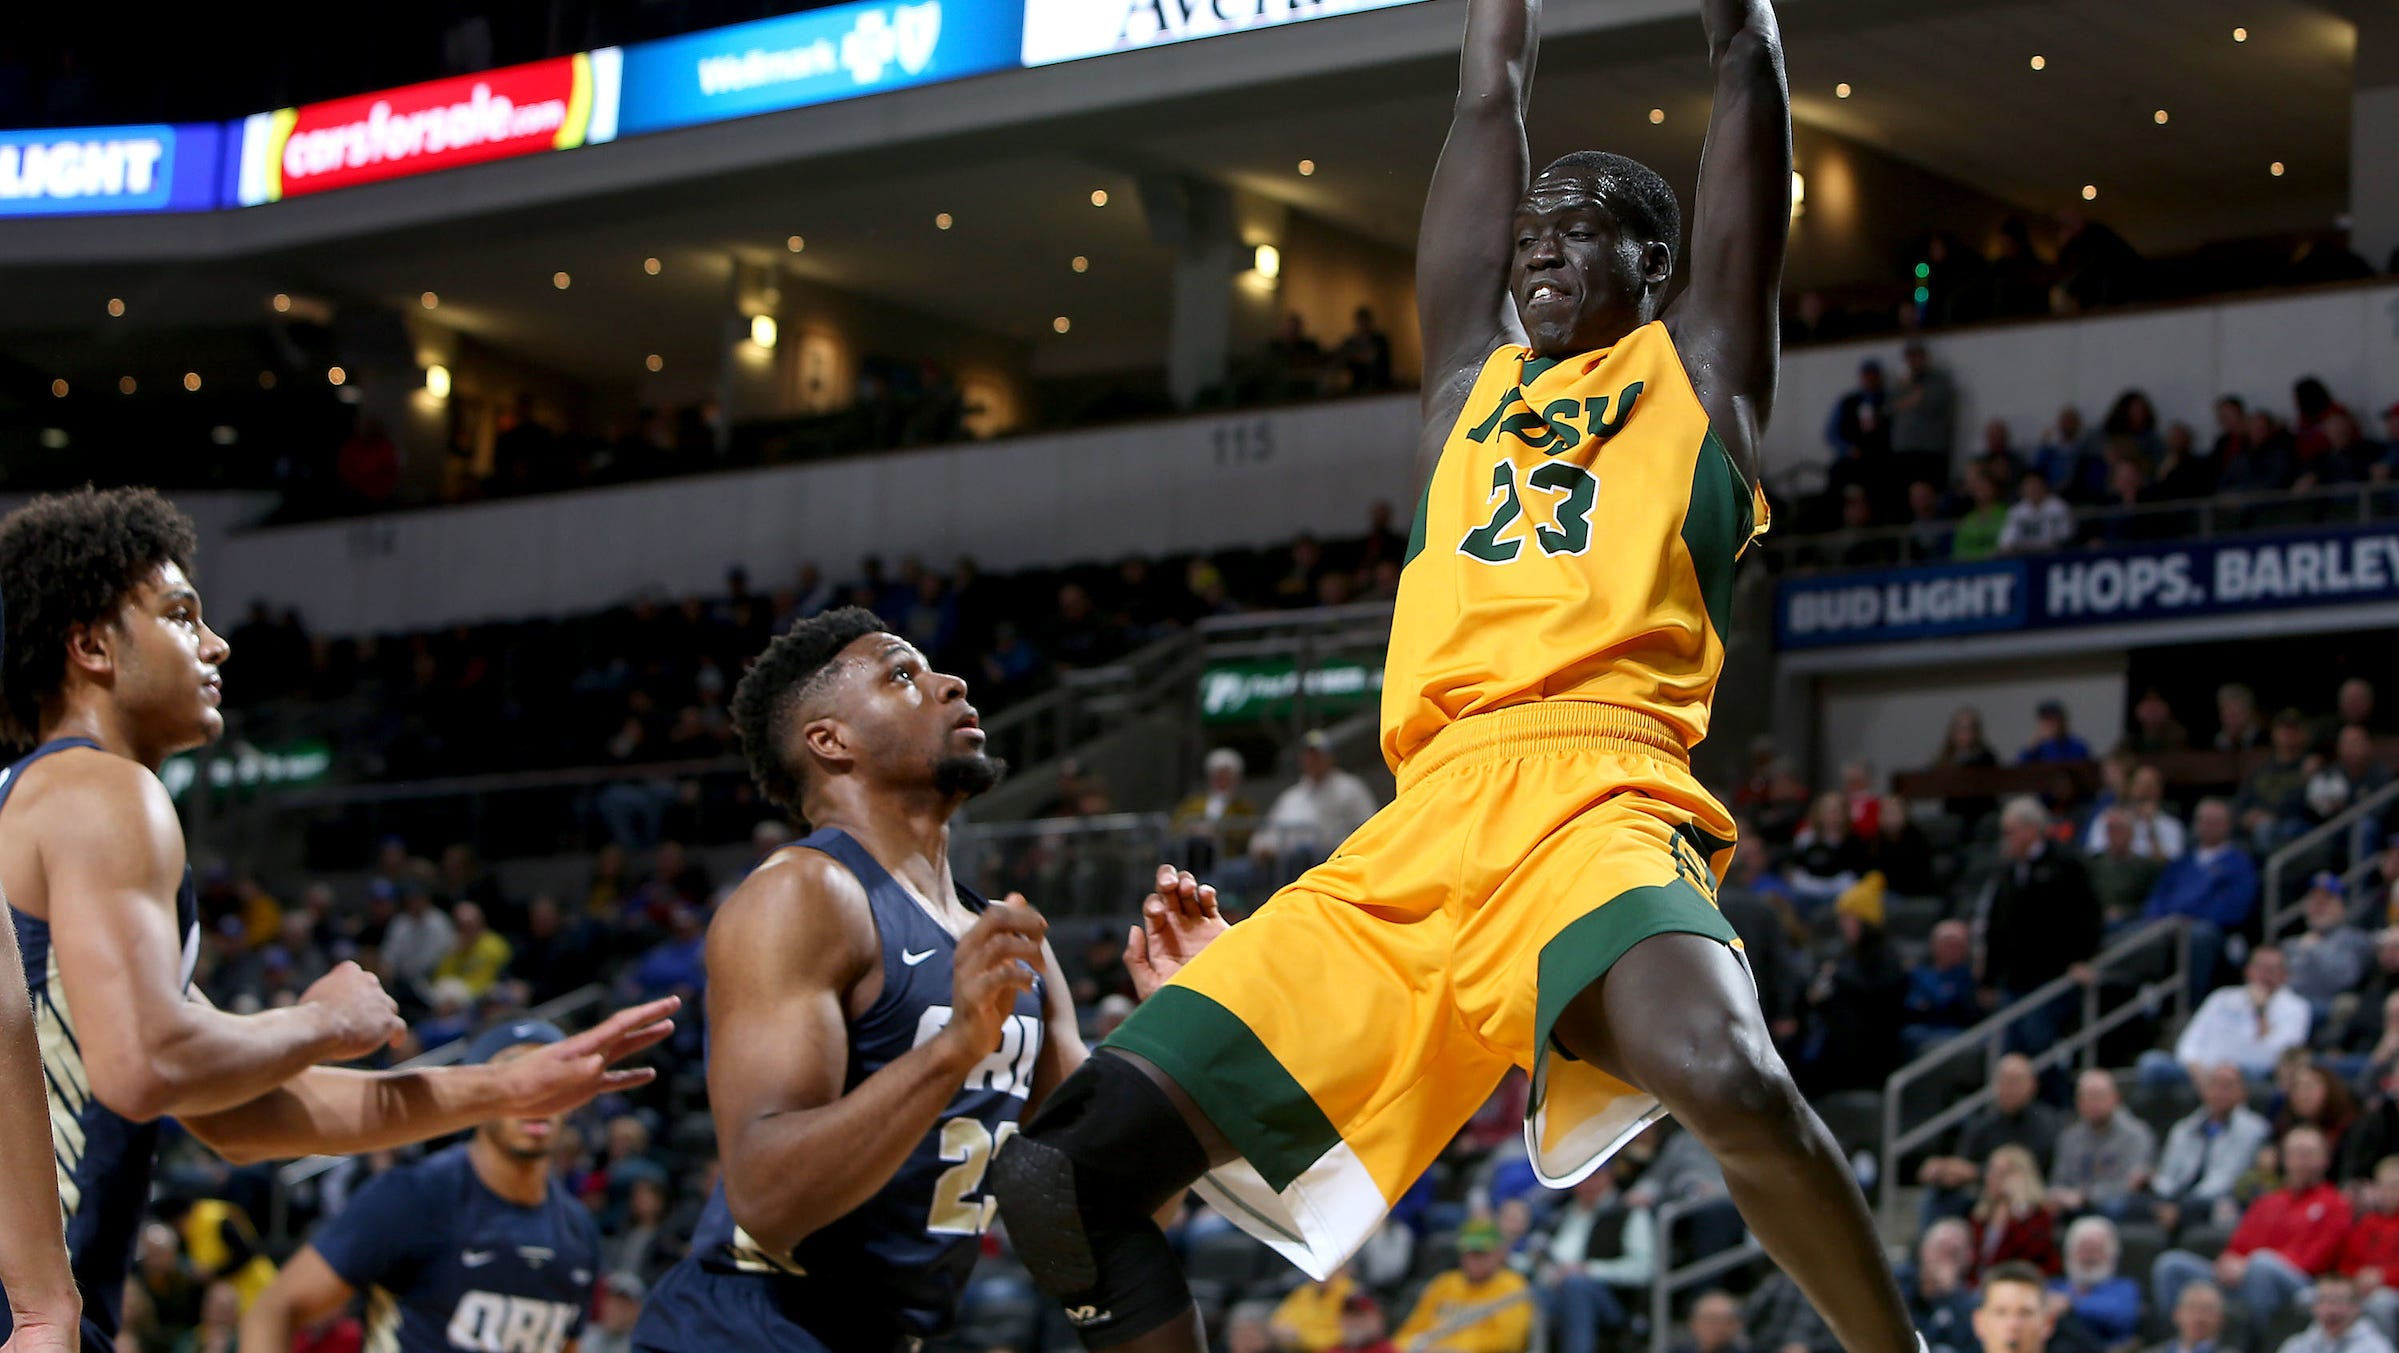 SIOUX FALLS, SD - MARCH 10: Deng Geu #23 from North Dakota State throws down a dunk above Emmanuel Nzekwesi #23 from Oral Roberts at the 2019 Summit League Basketball Tournament at the Denny Sanford Premier Center in Sioux Falls. (Photo by Dave Eggen/Inertia)